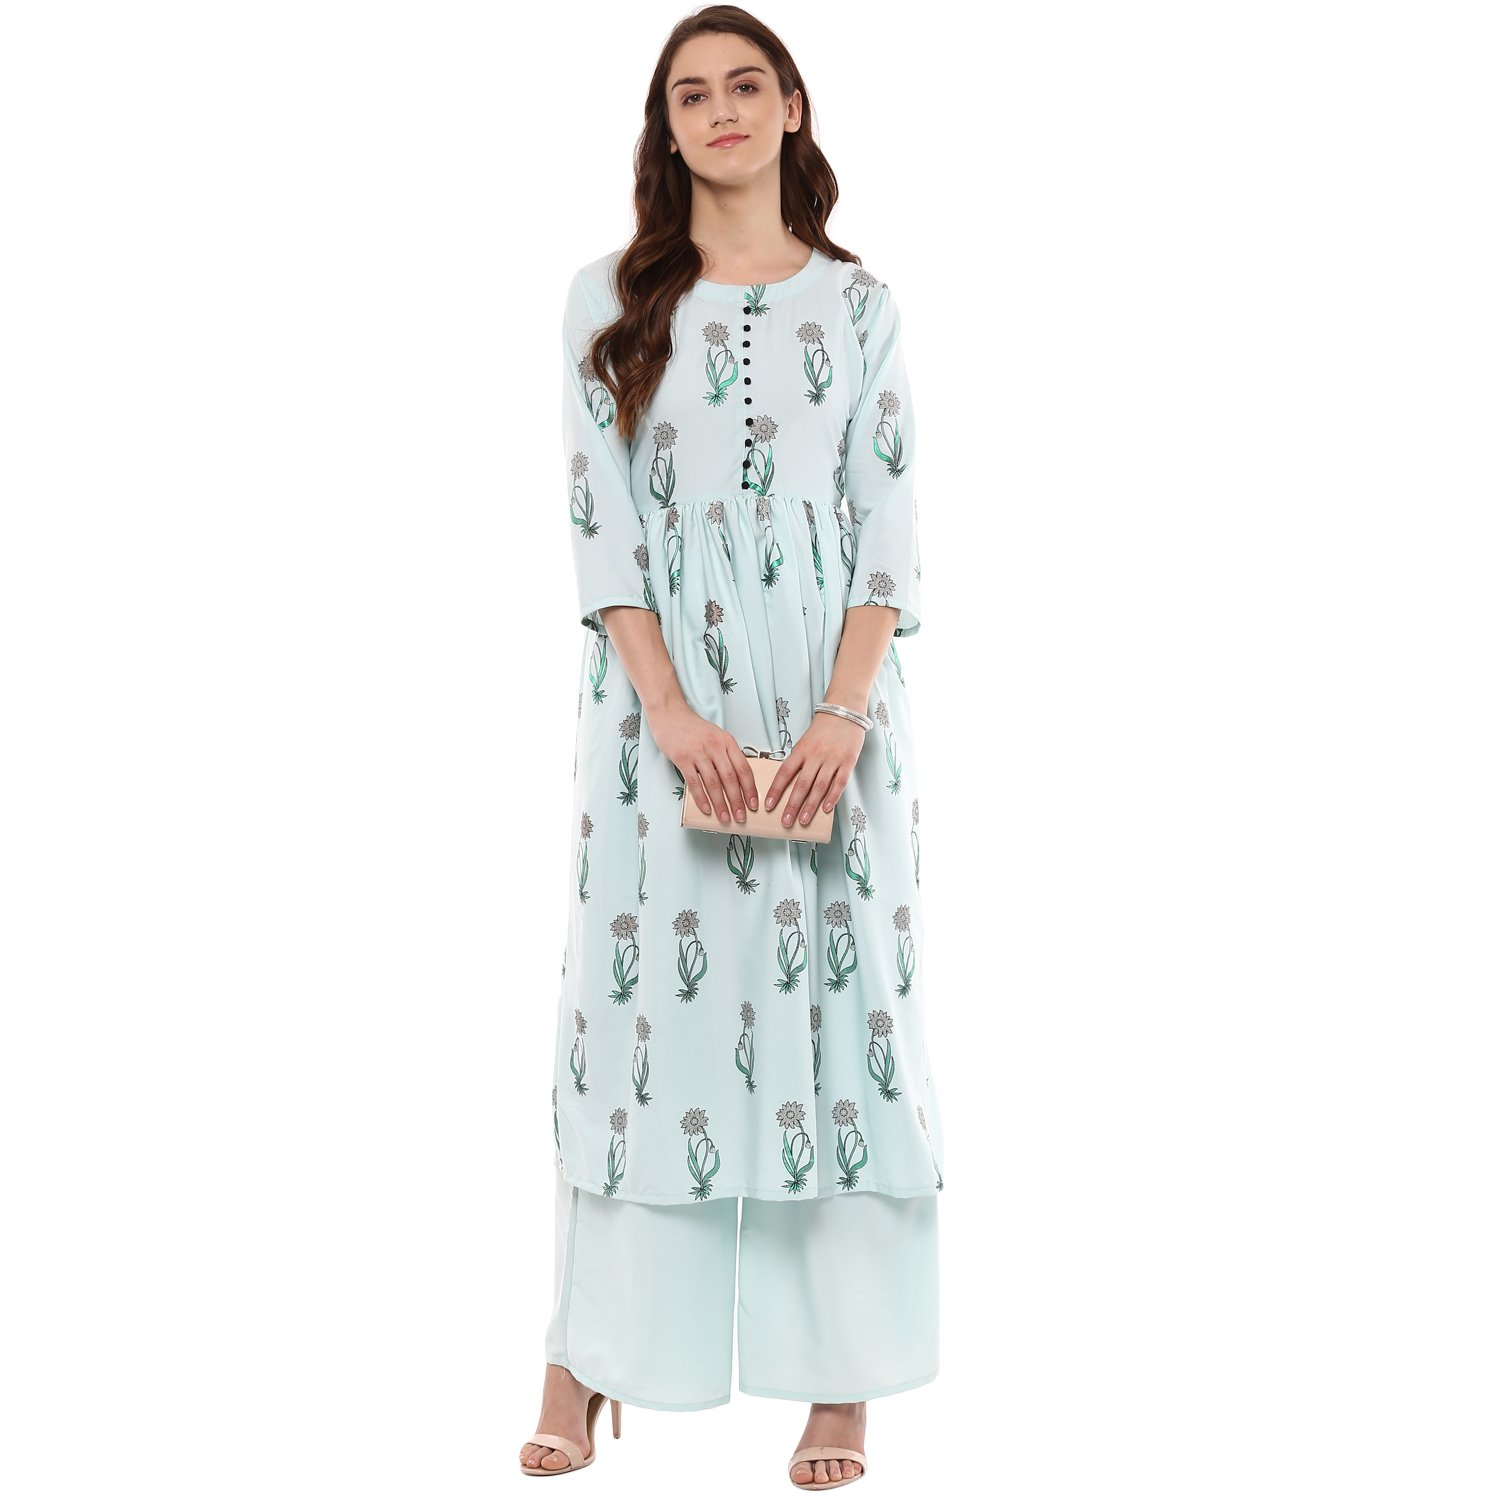 059ff8e80e8 Ziyaa women s Summer Blue color Flared Crepe Floral Print Kurta   Palazzo  Set (ZIKUCR2132ANDPL)  Amazon.in  Clothing   Accessories